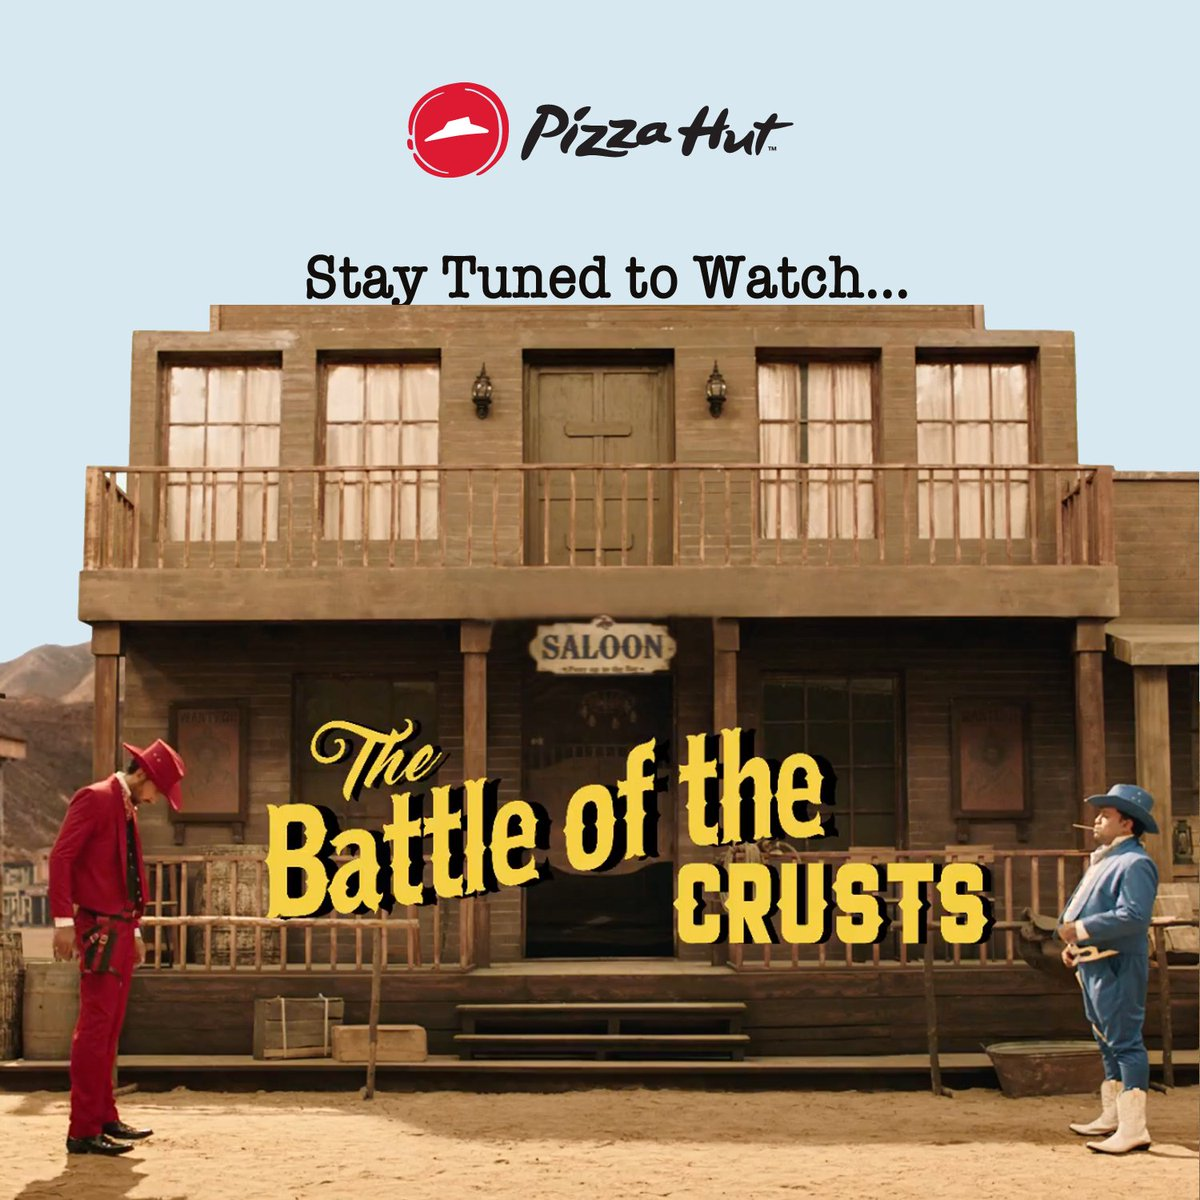 Prepare Yourselves The Battle of the crusts is about to begin. Stay tuned to watch IndiasMostWanted. https t